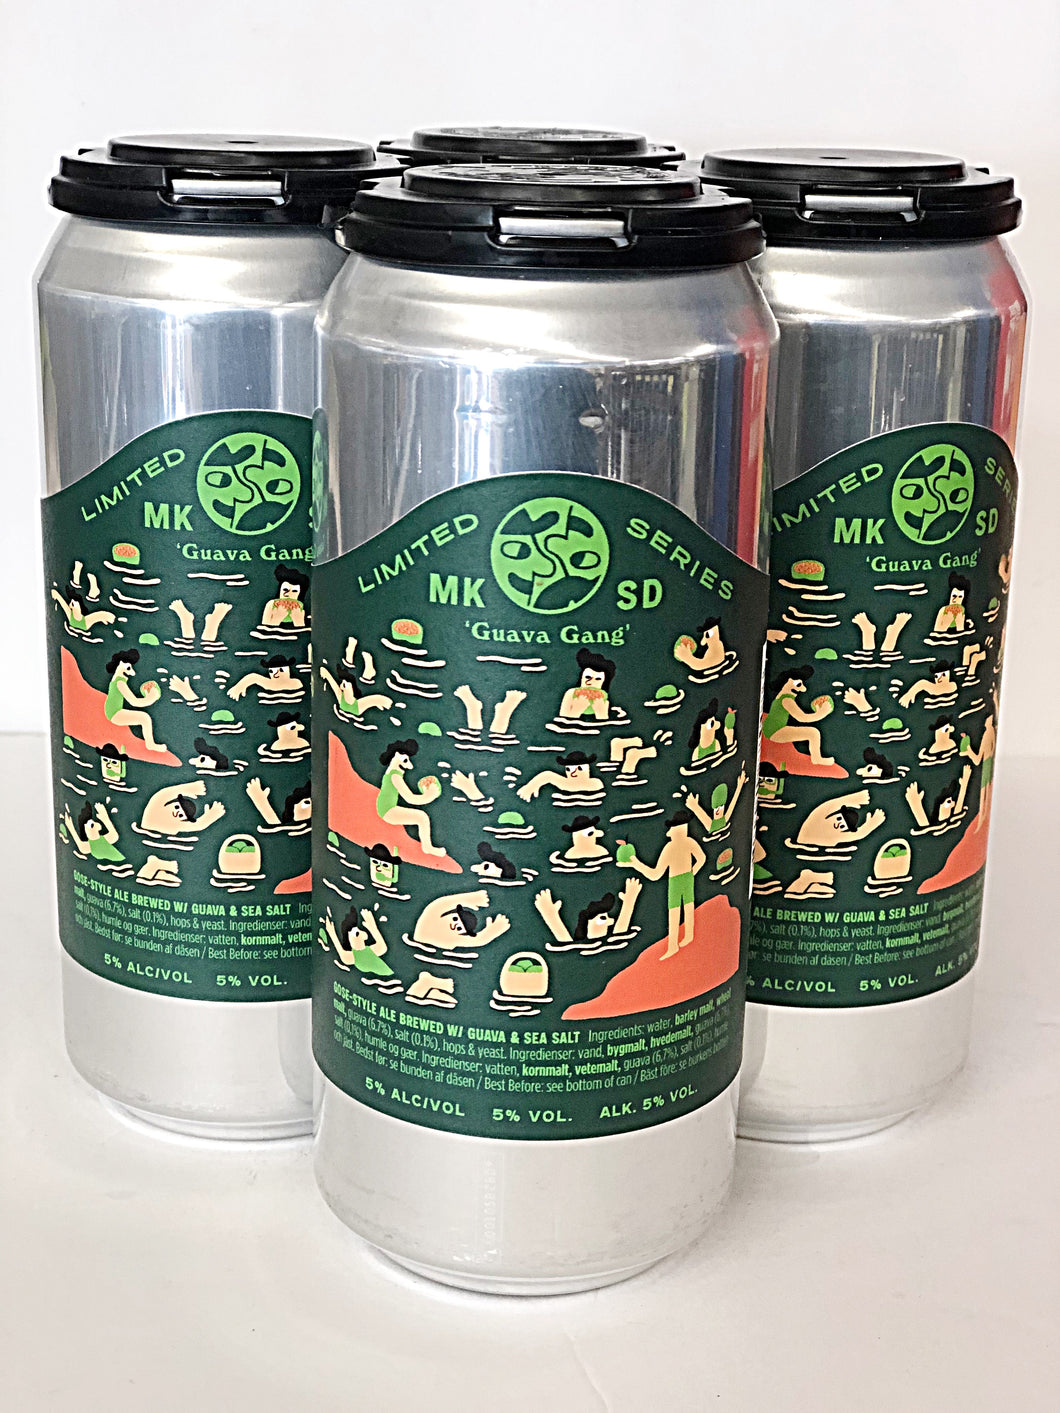 MIKKELLER GUAVA GANG GOSE FOR DAVID